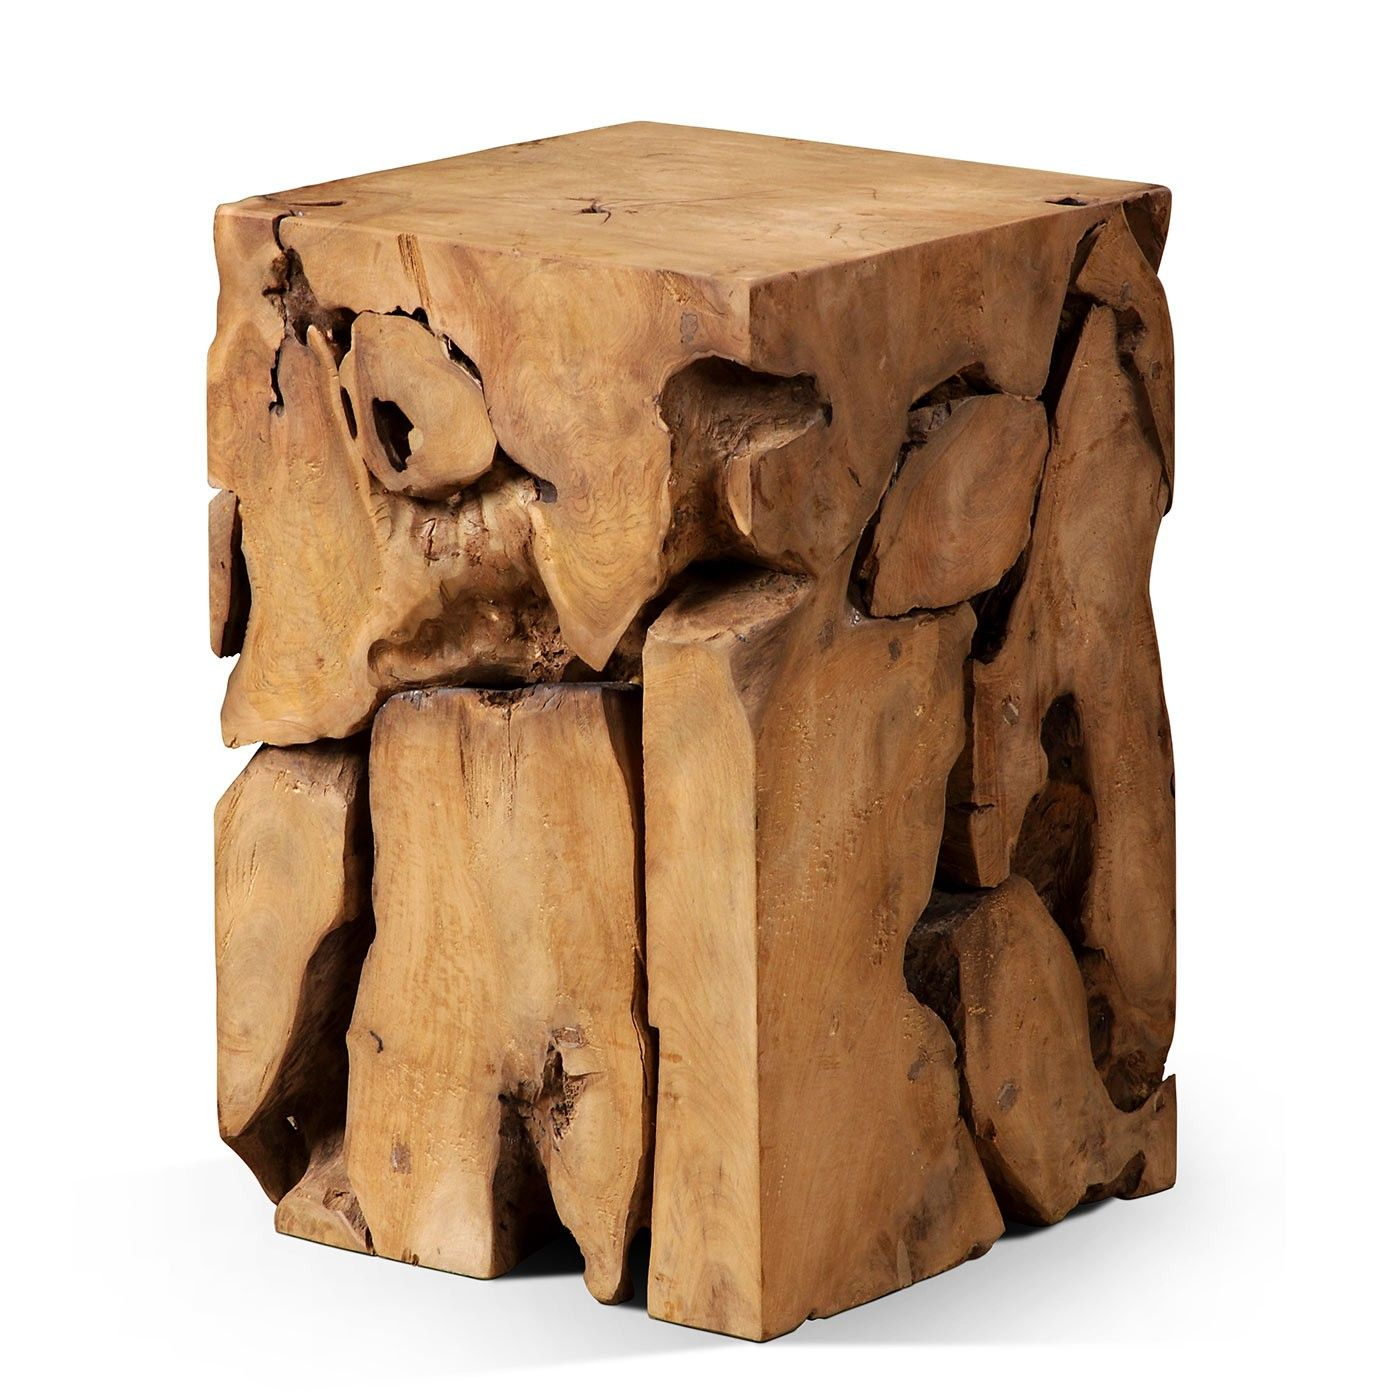 Teak Tree Root U2013 Coffee Table With A Unique And Impressive Presence For Any  Home.